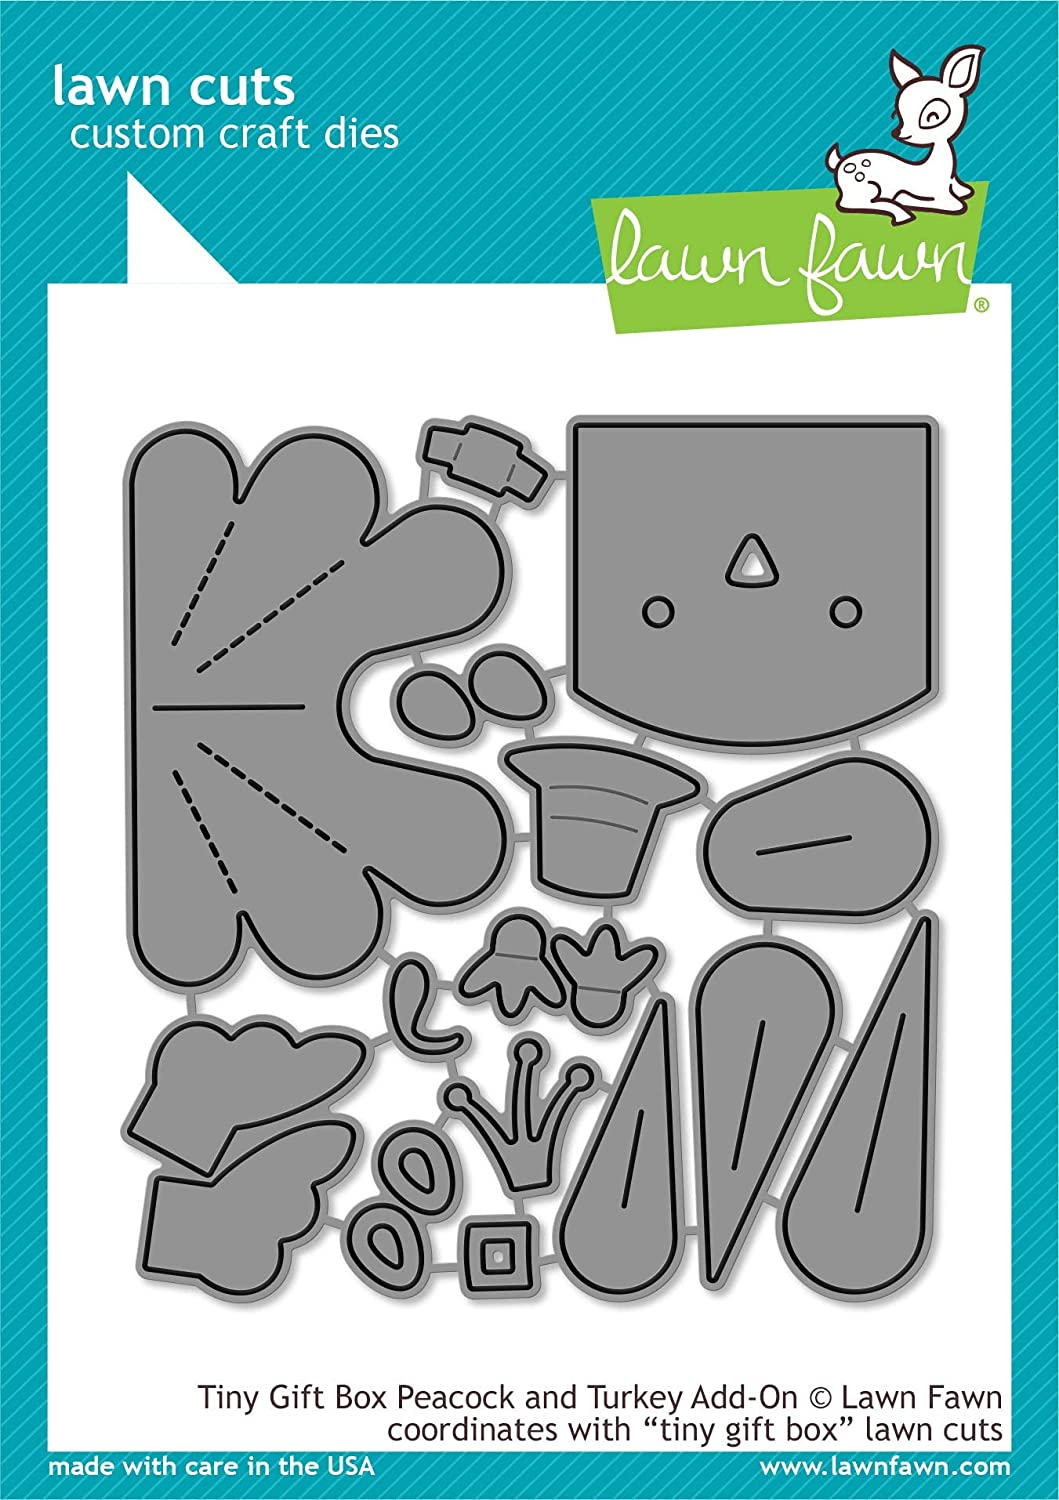 Lawn Fawn Tiny Gift Box Peacock and Turkey Add-on Die (LF2051)